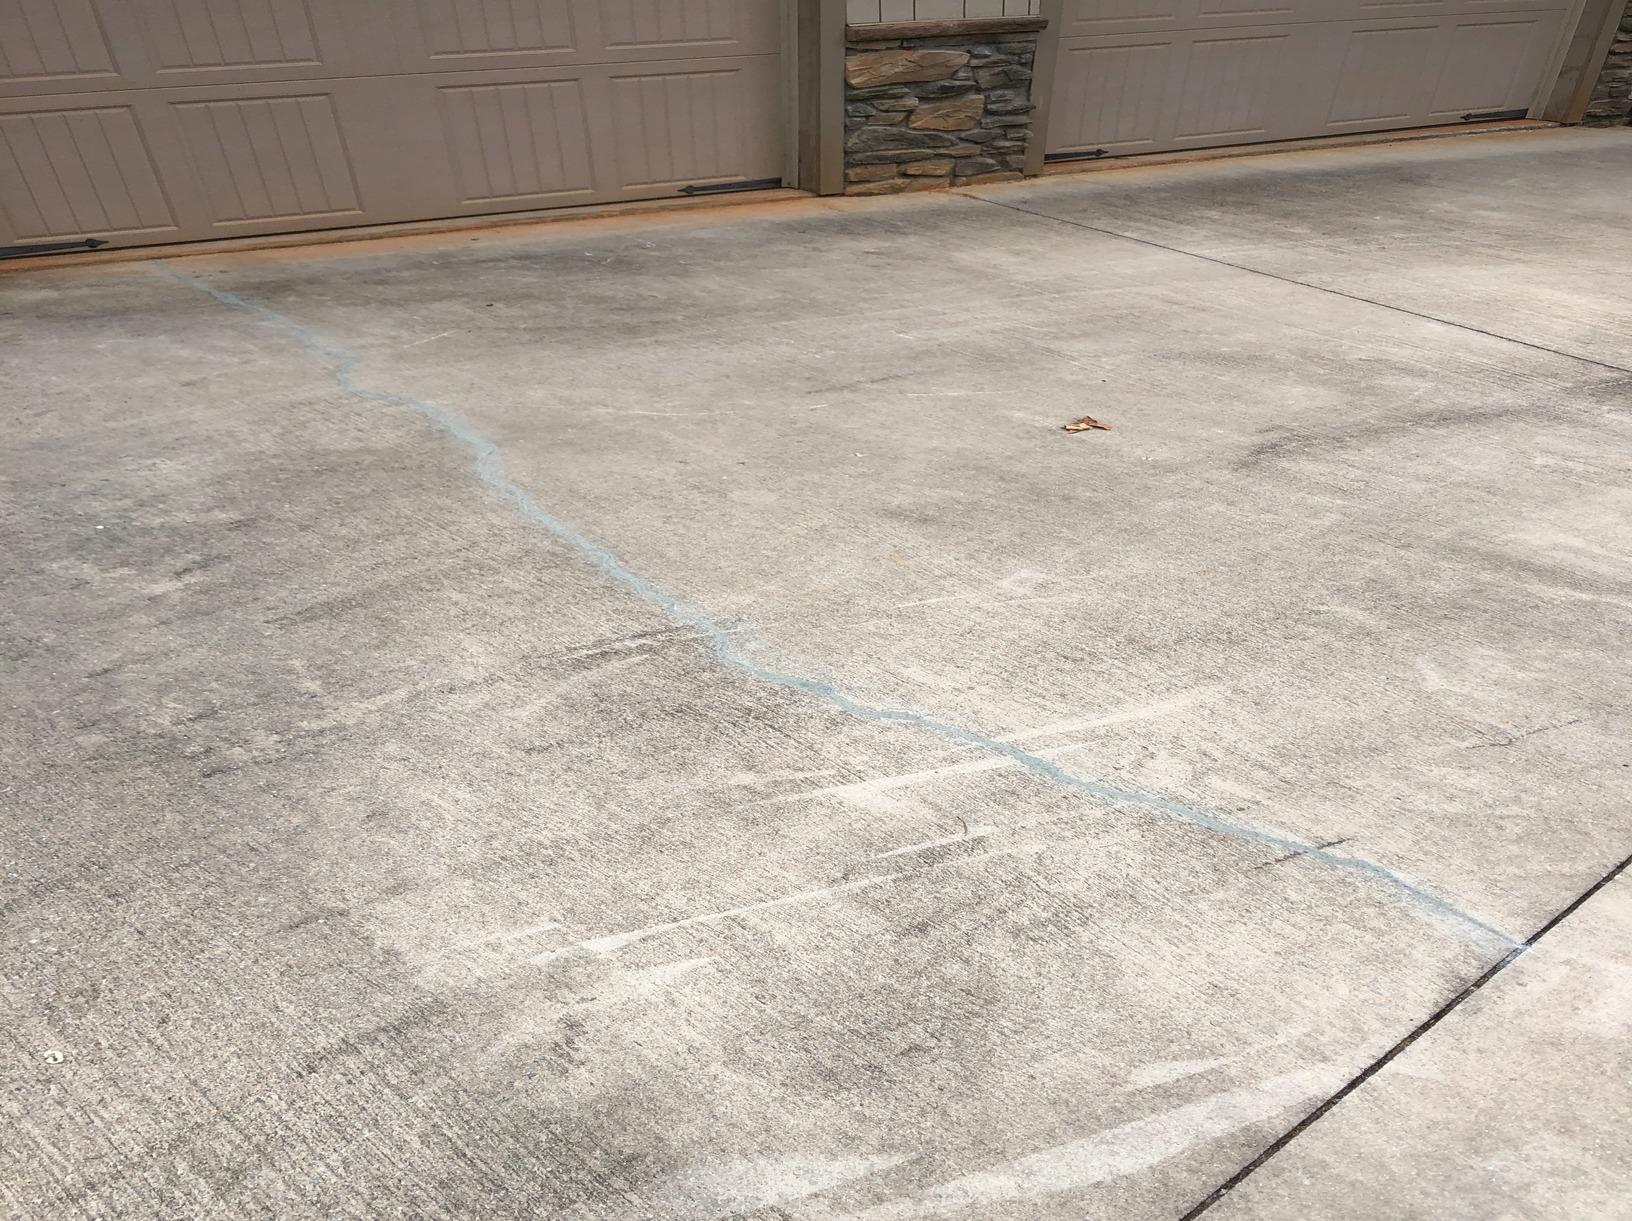 Fixing Cracked Concrete Driveway in Nebo, NC - After Photo